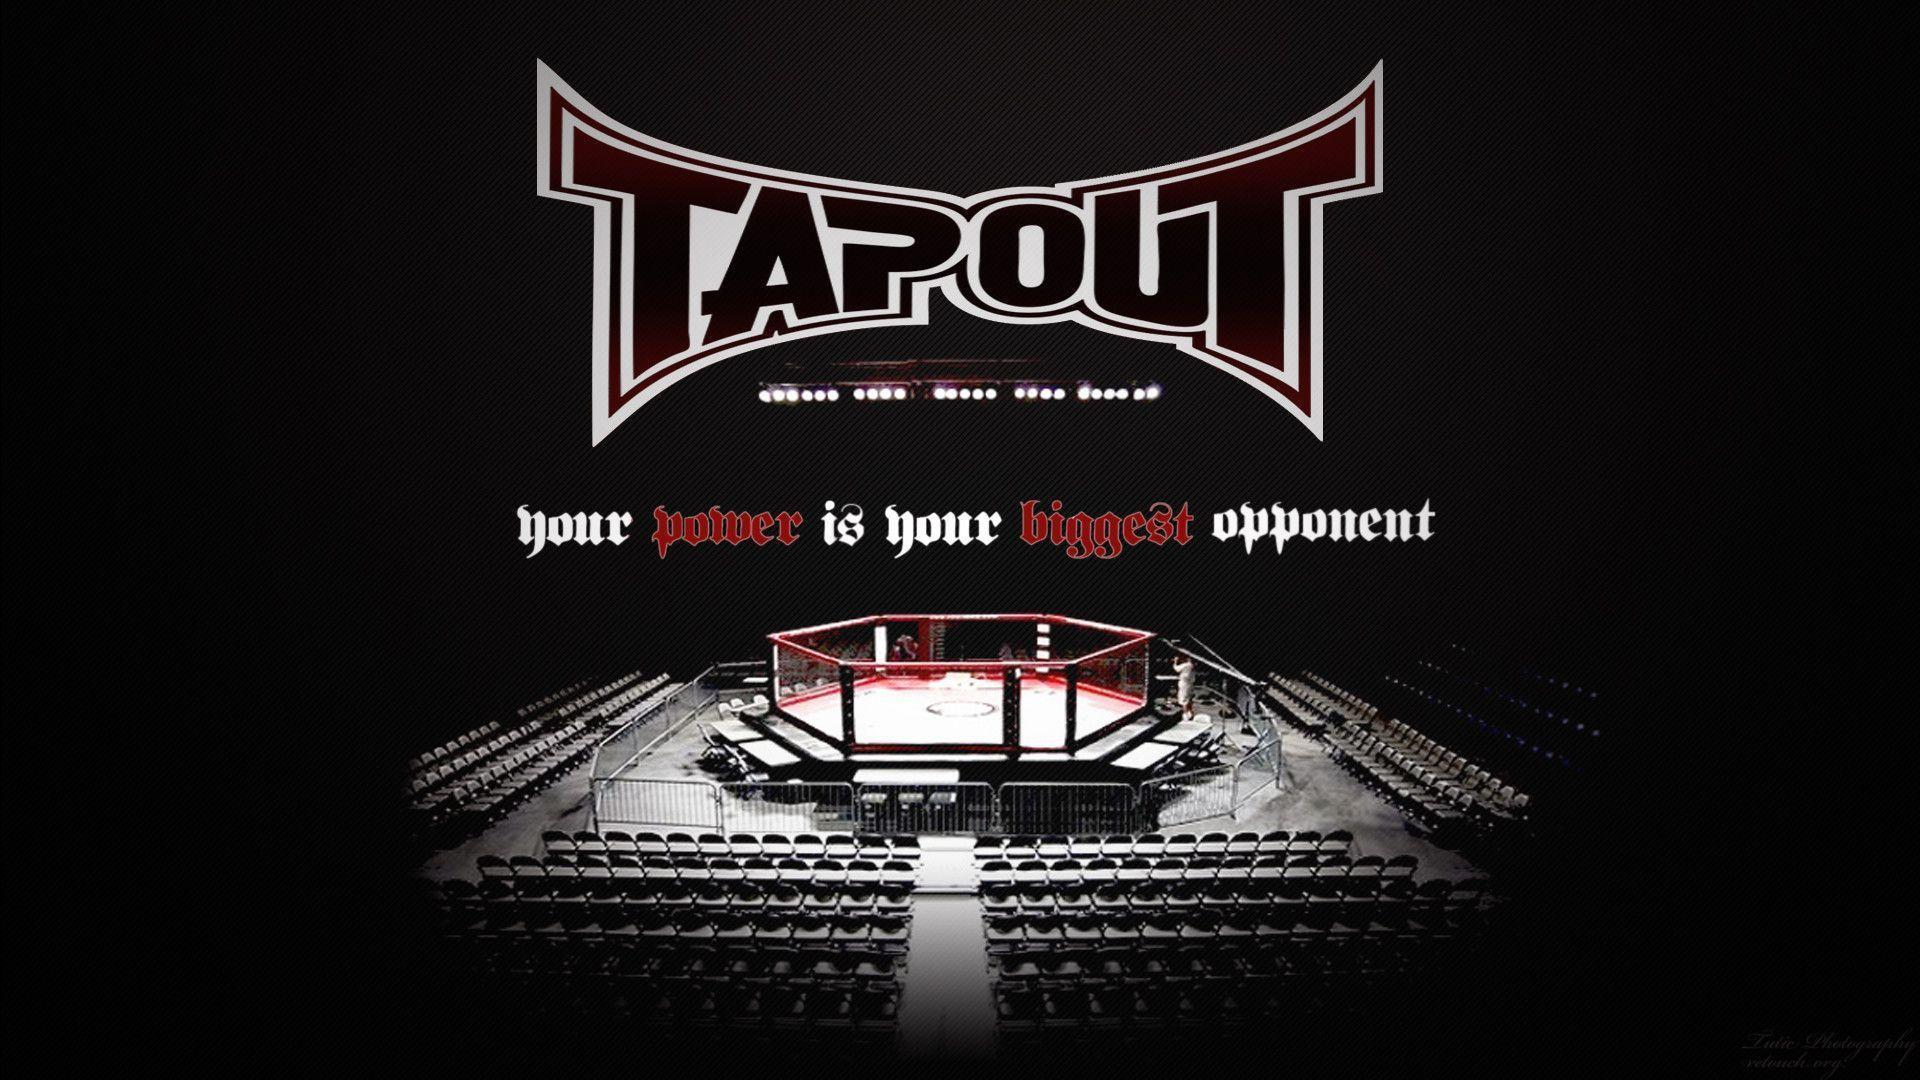 tapout wallpaper for facebook - photo #18